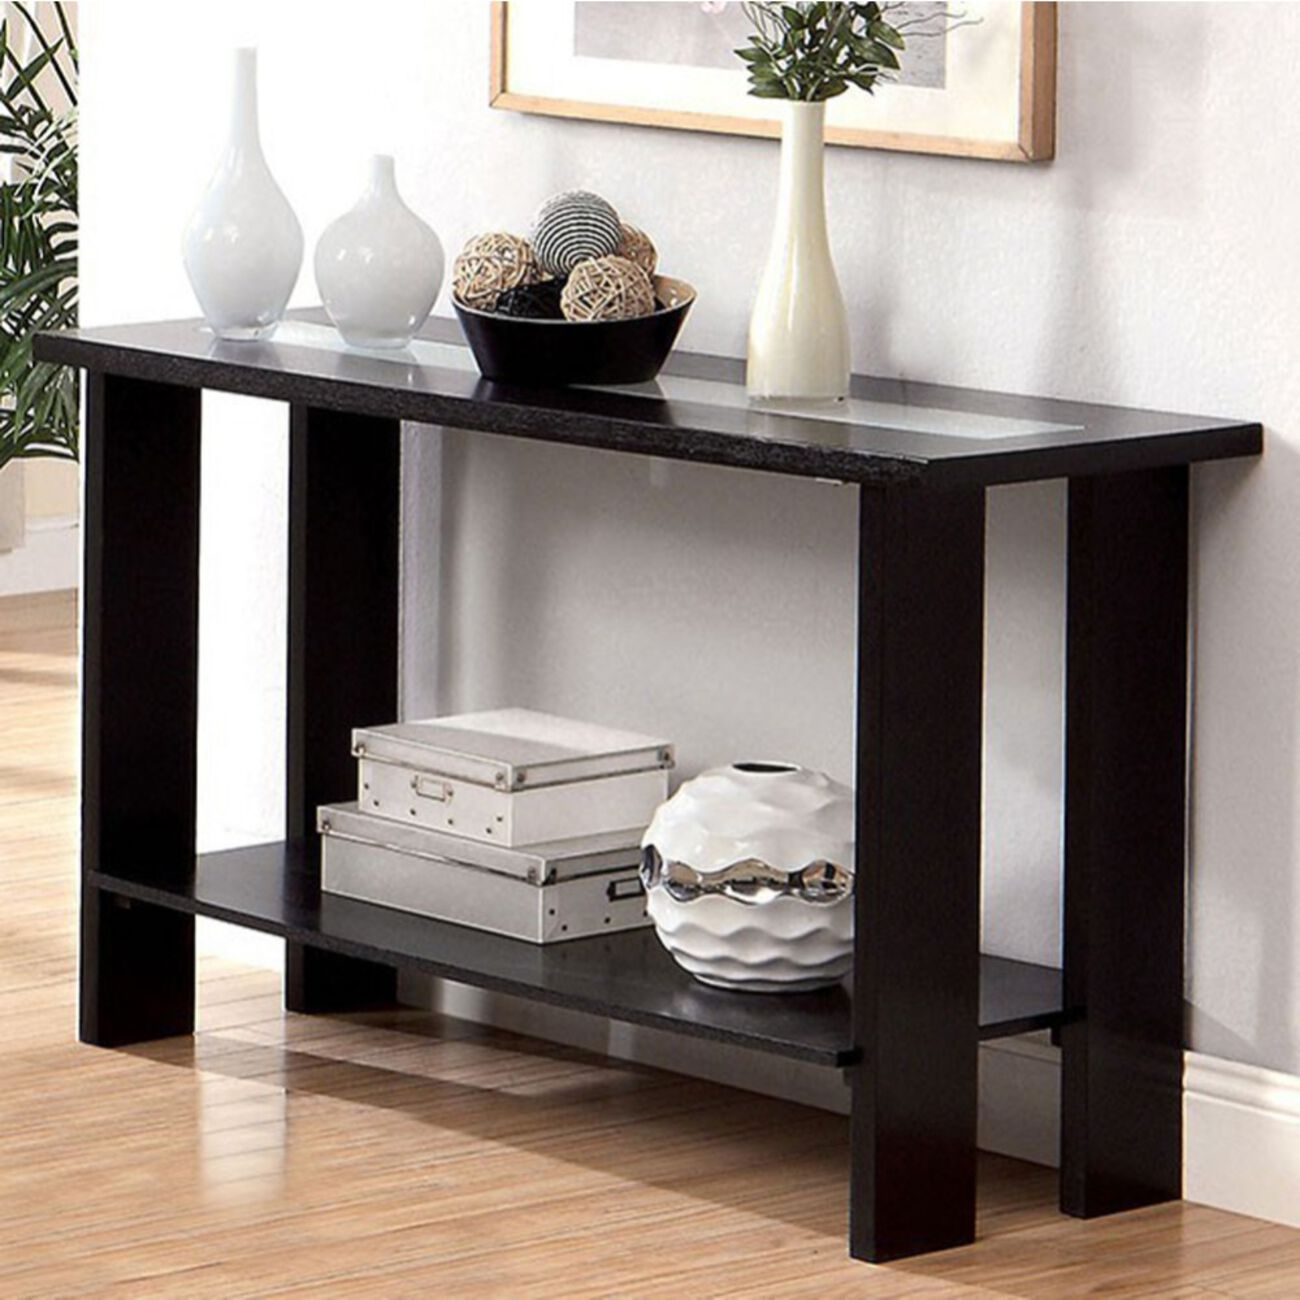 Luminar II Contemporary Style Sofa Table